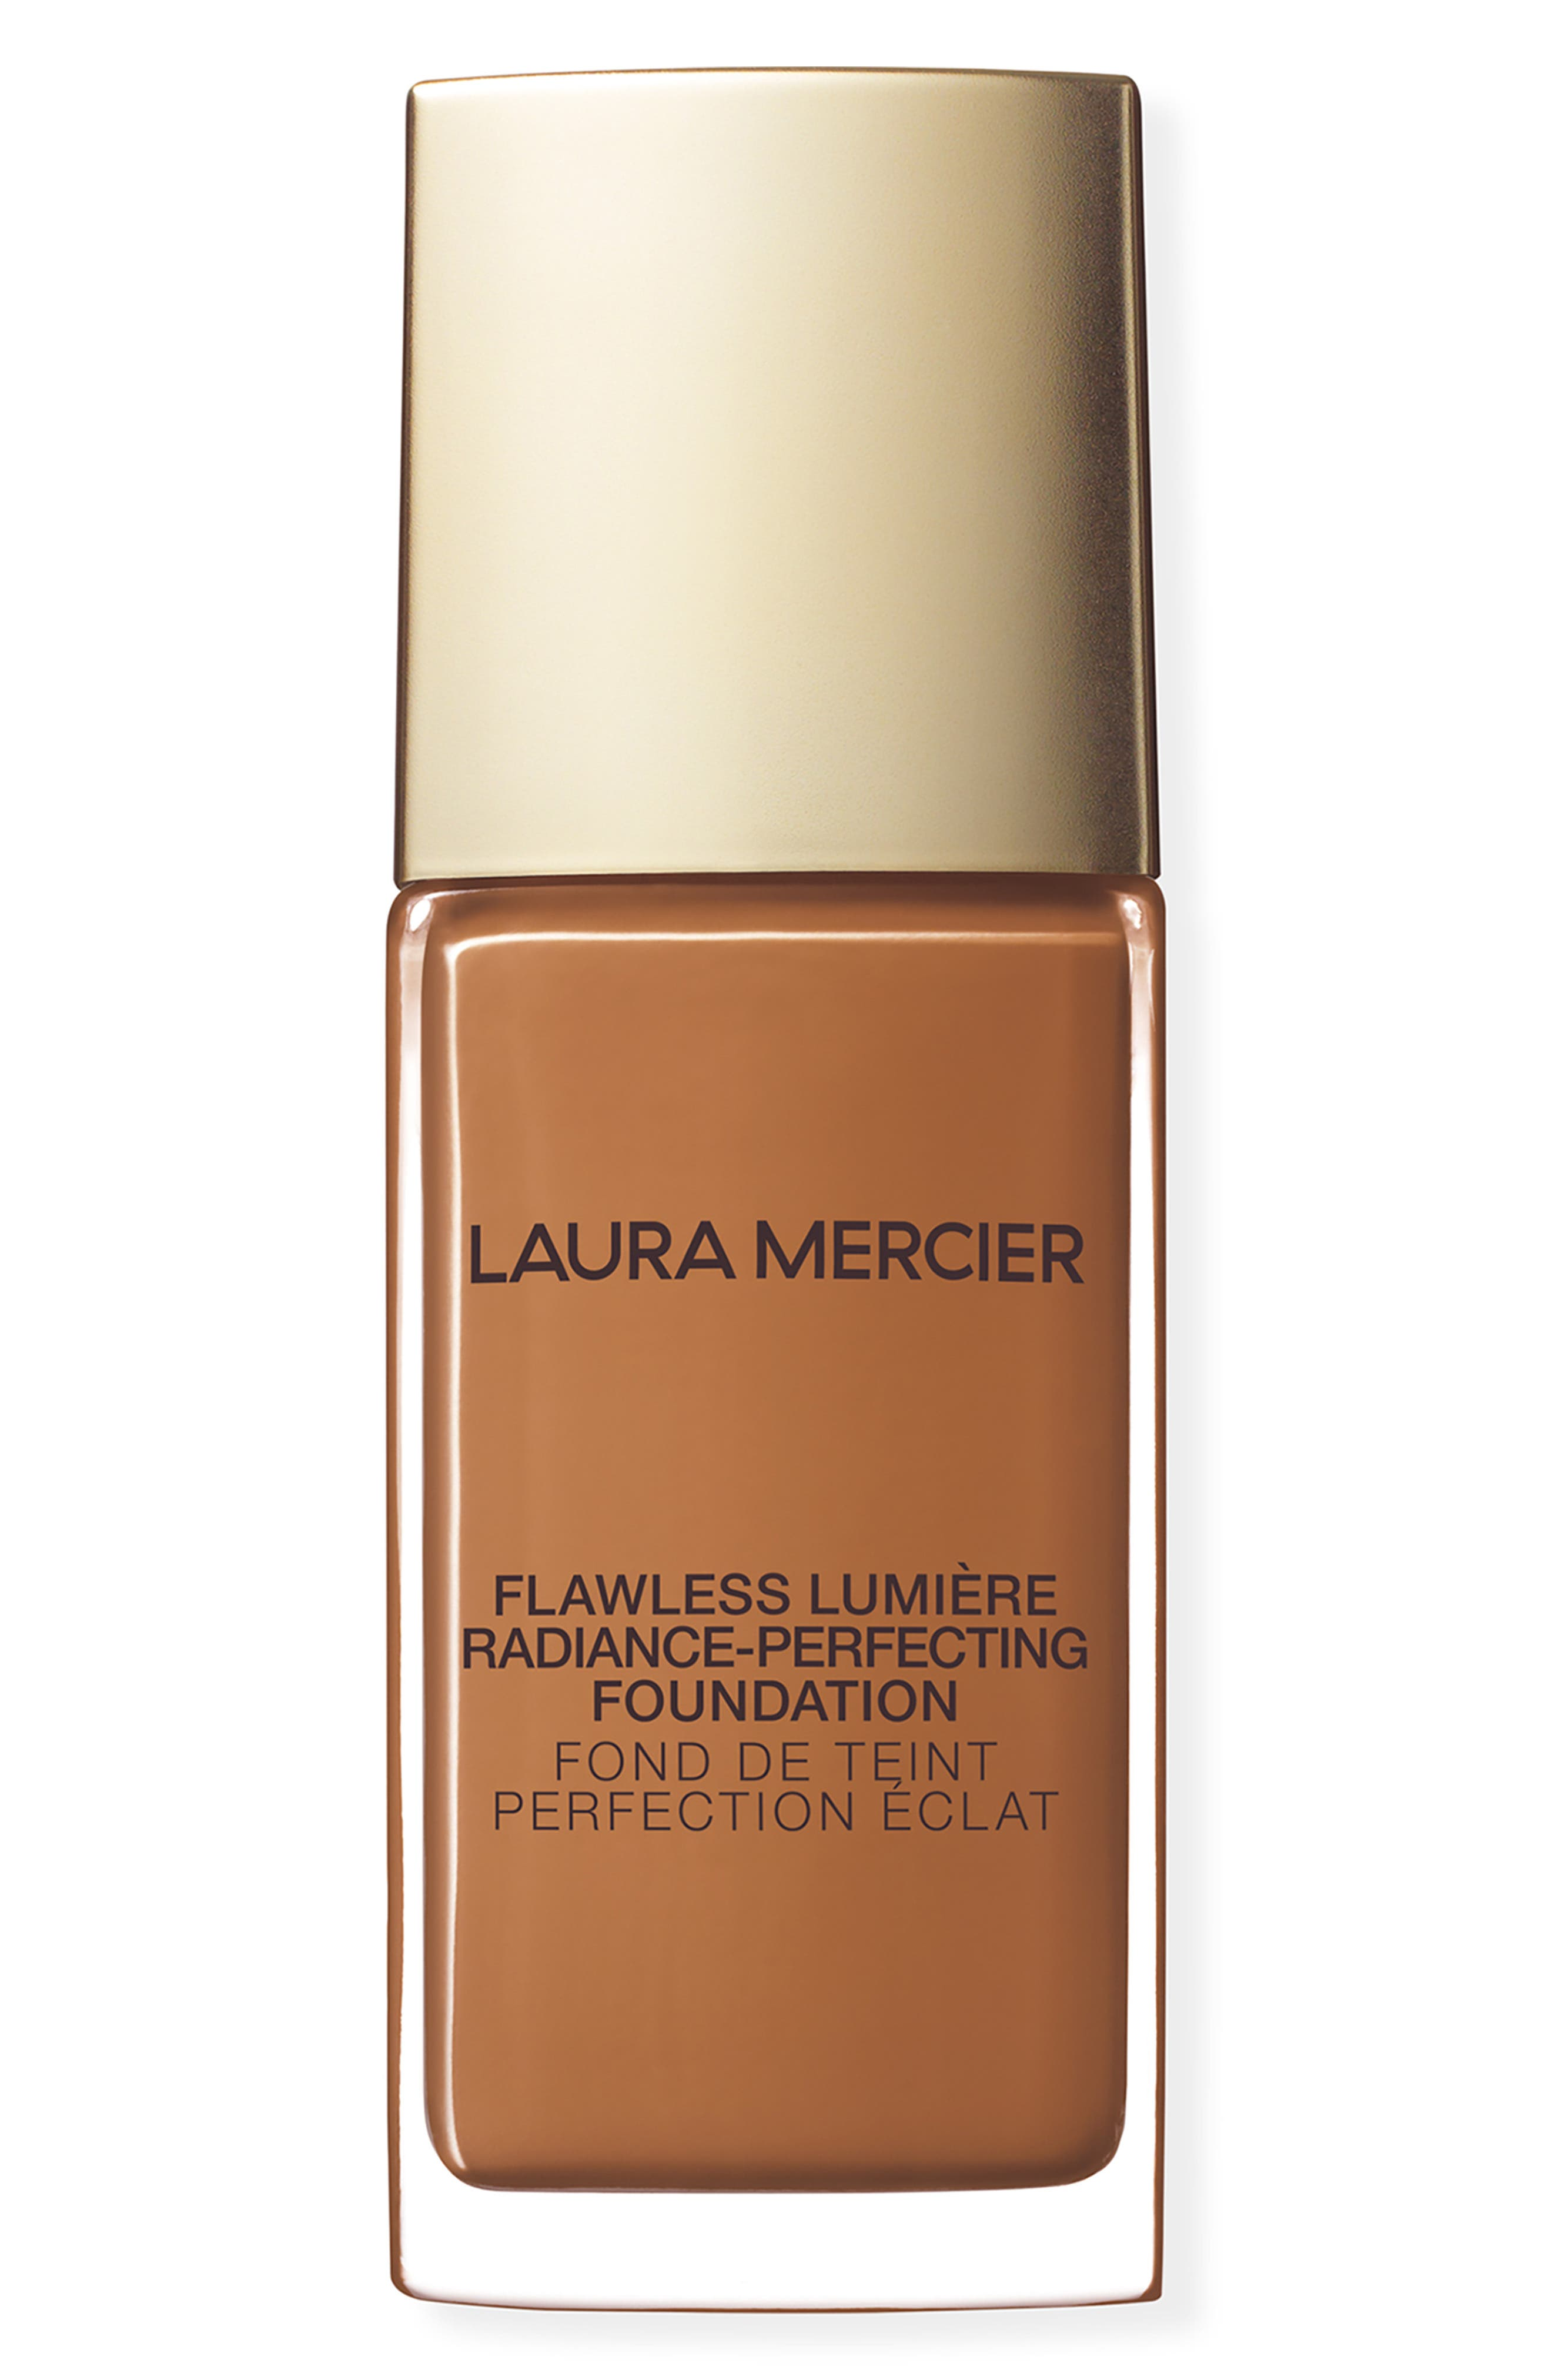 Flawless Lumière Radiance-Perfecting Foundation,                             Main thumbnail 1, color,                             5C1 NUTMEG